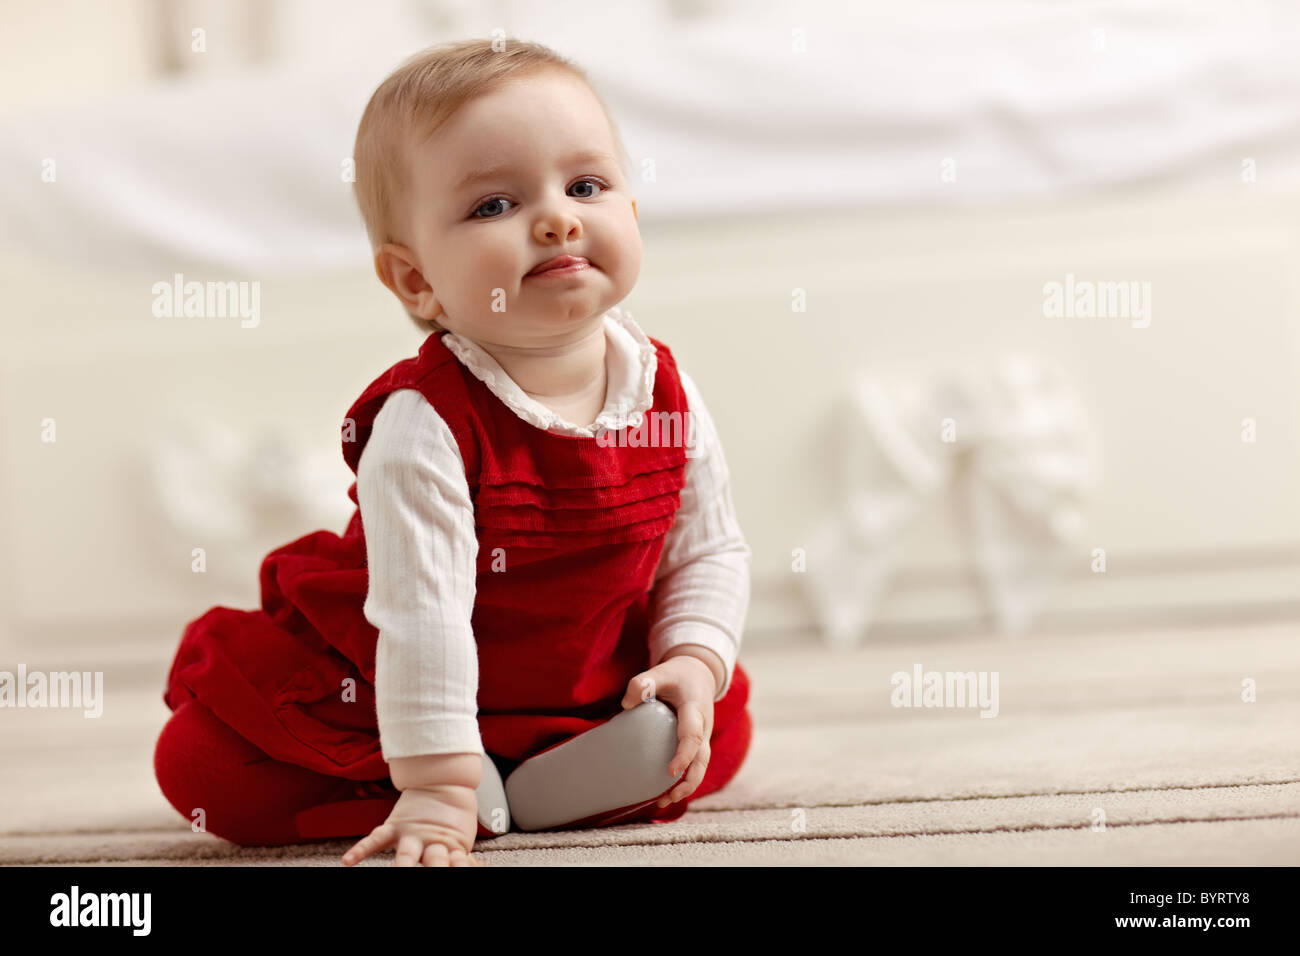 portrait of 6 months female child sitting on floor in red clothes and looking at camera - Stock Image